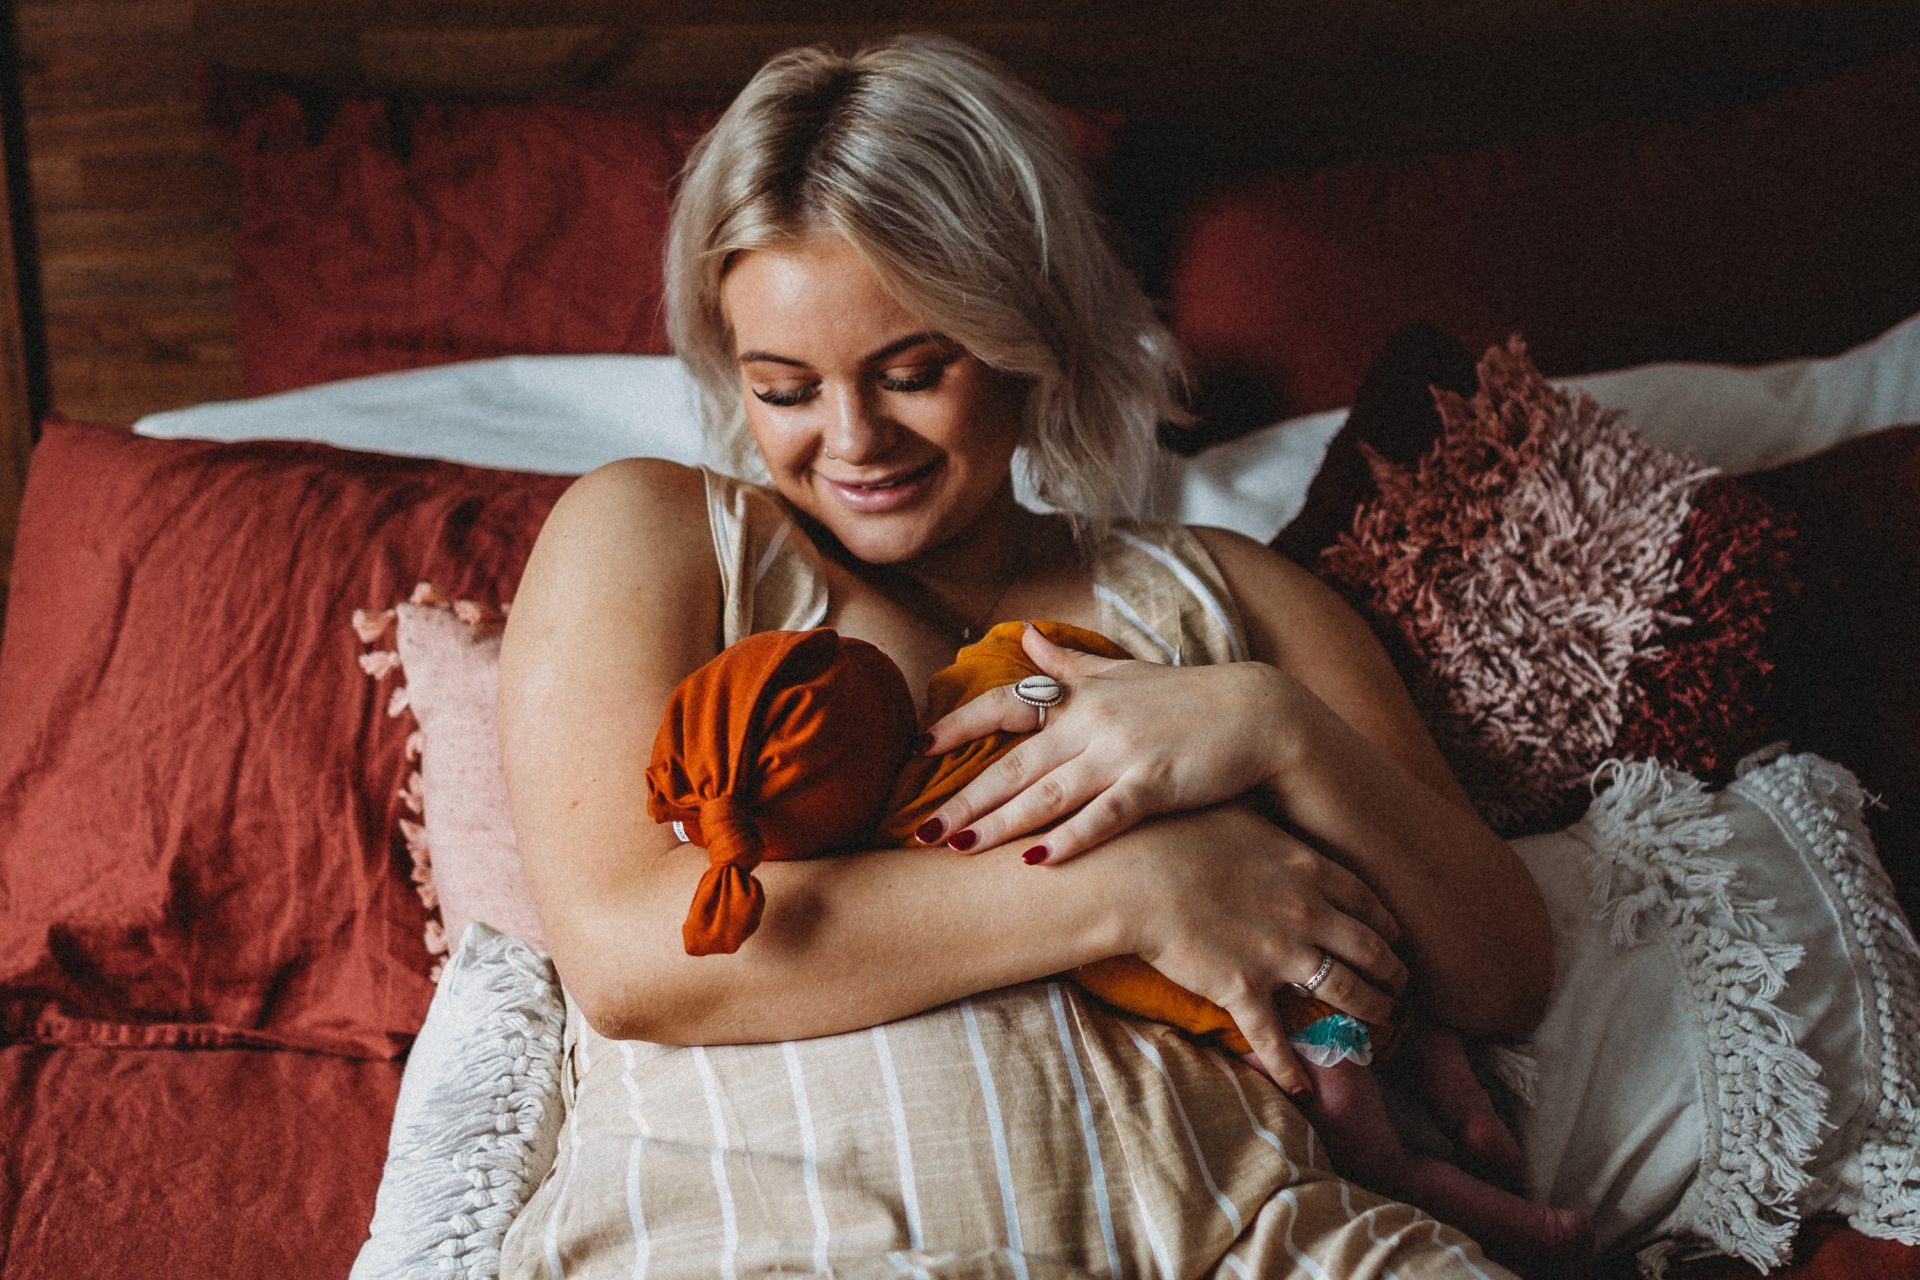 Young woman leaning back on pillows, smiling down at newborn son while breastfeeding